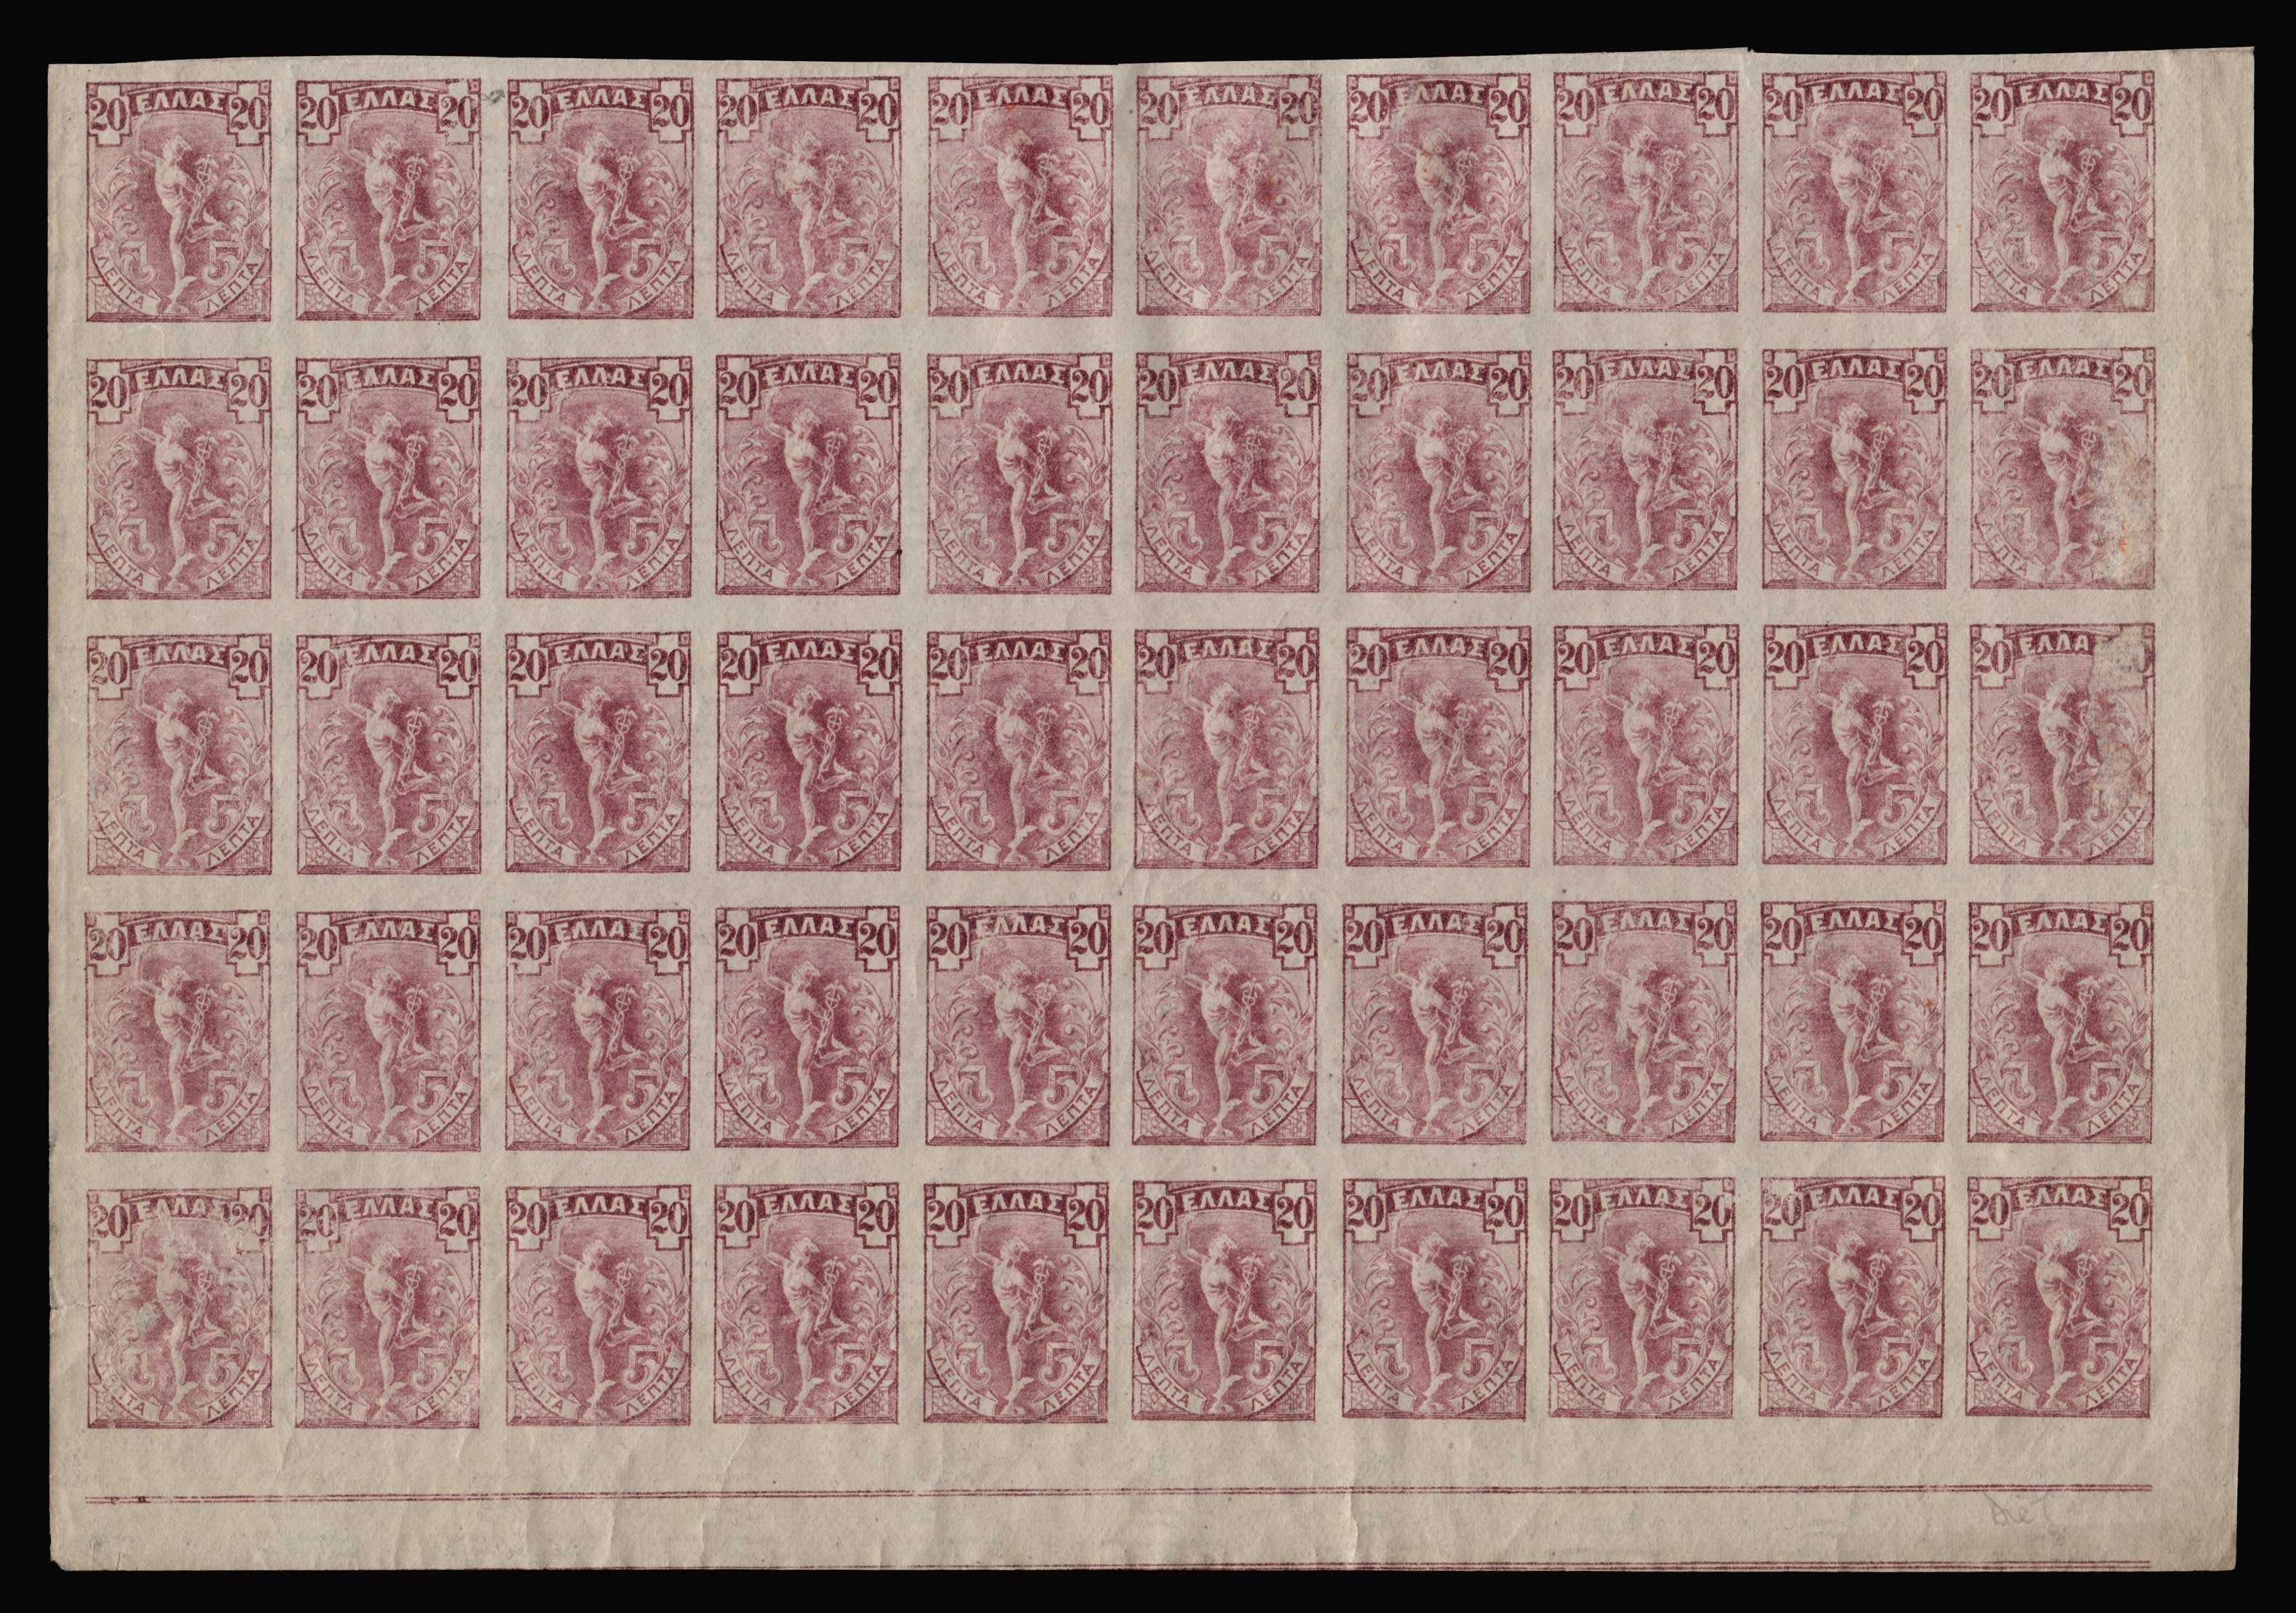 Lot 645 - -  1901/02 FLYING MERCURY & A.M. 1901/02 FLYING MERCURY & A.M. -  Athens Auctions Public Auction 87 General Stamp Sale